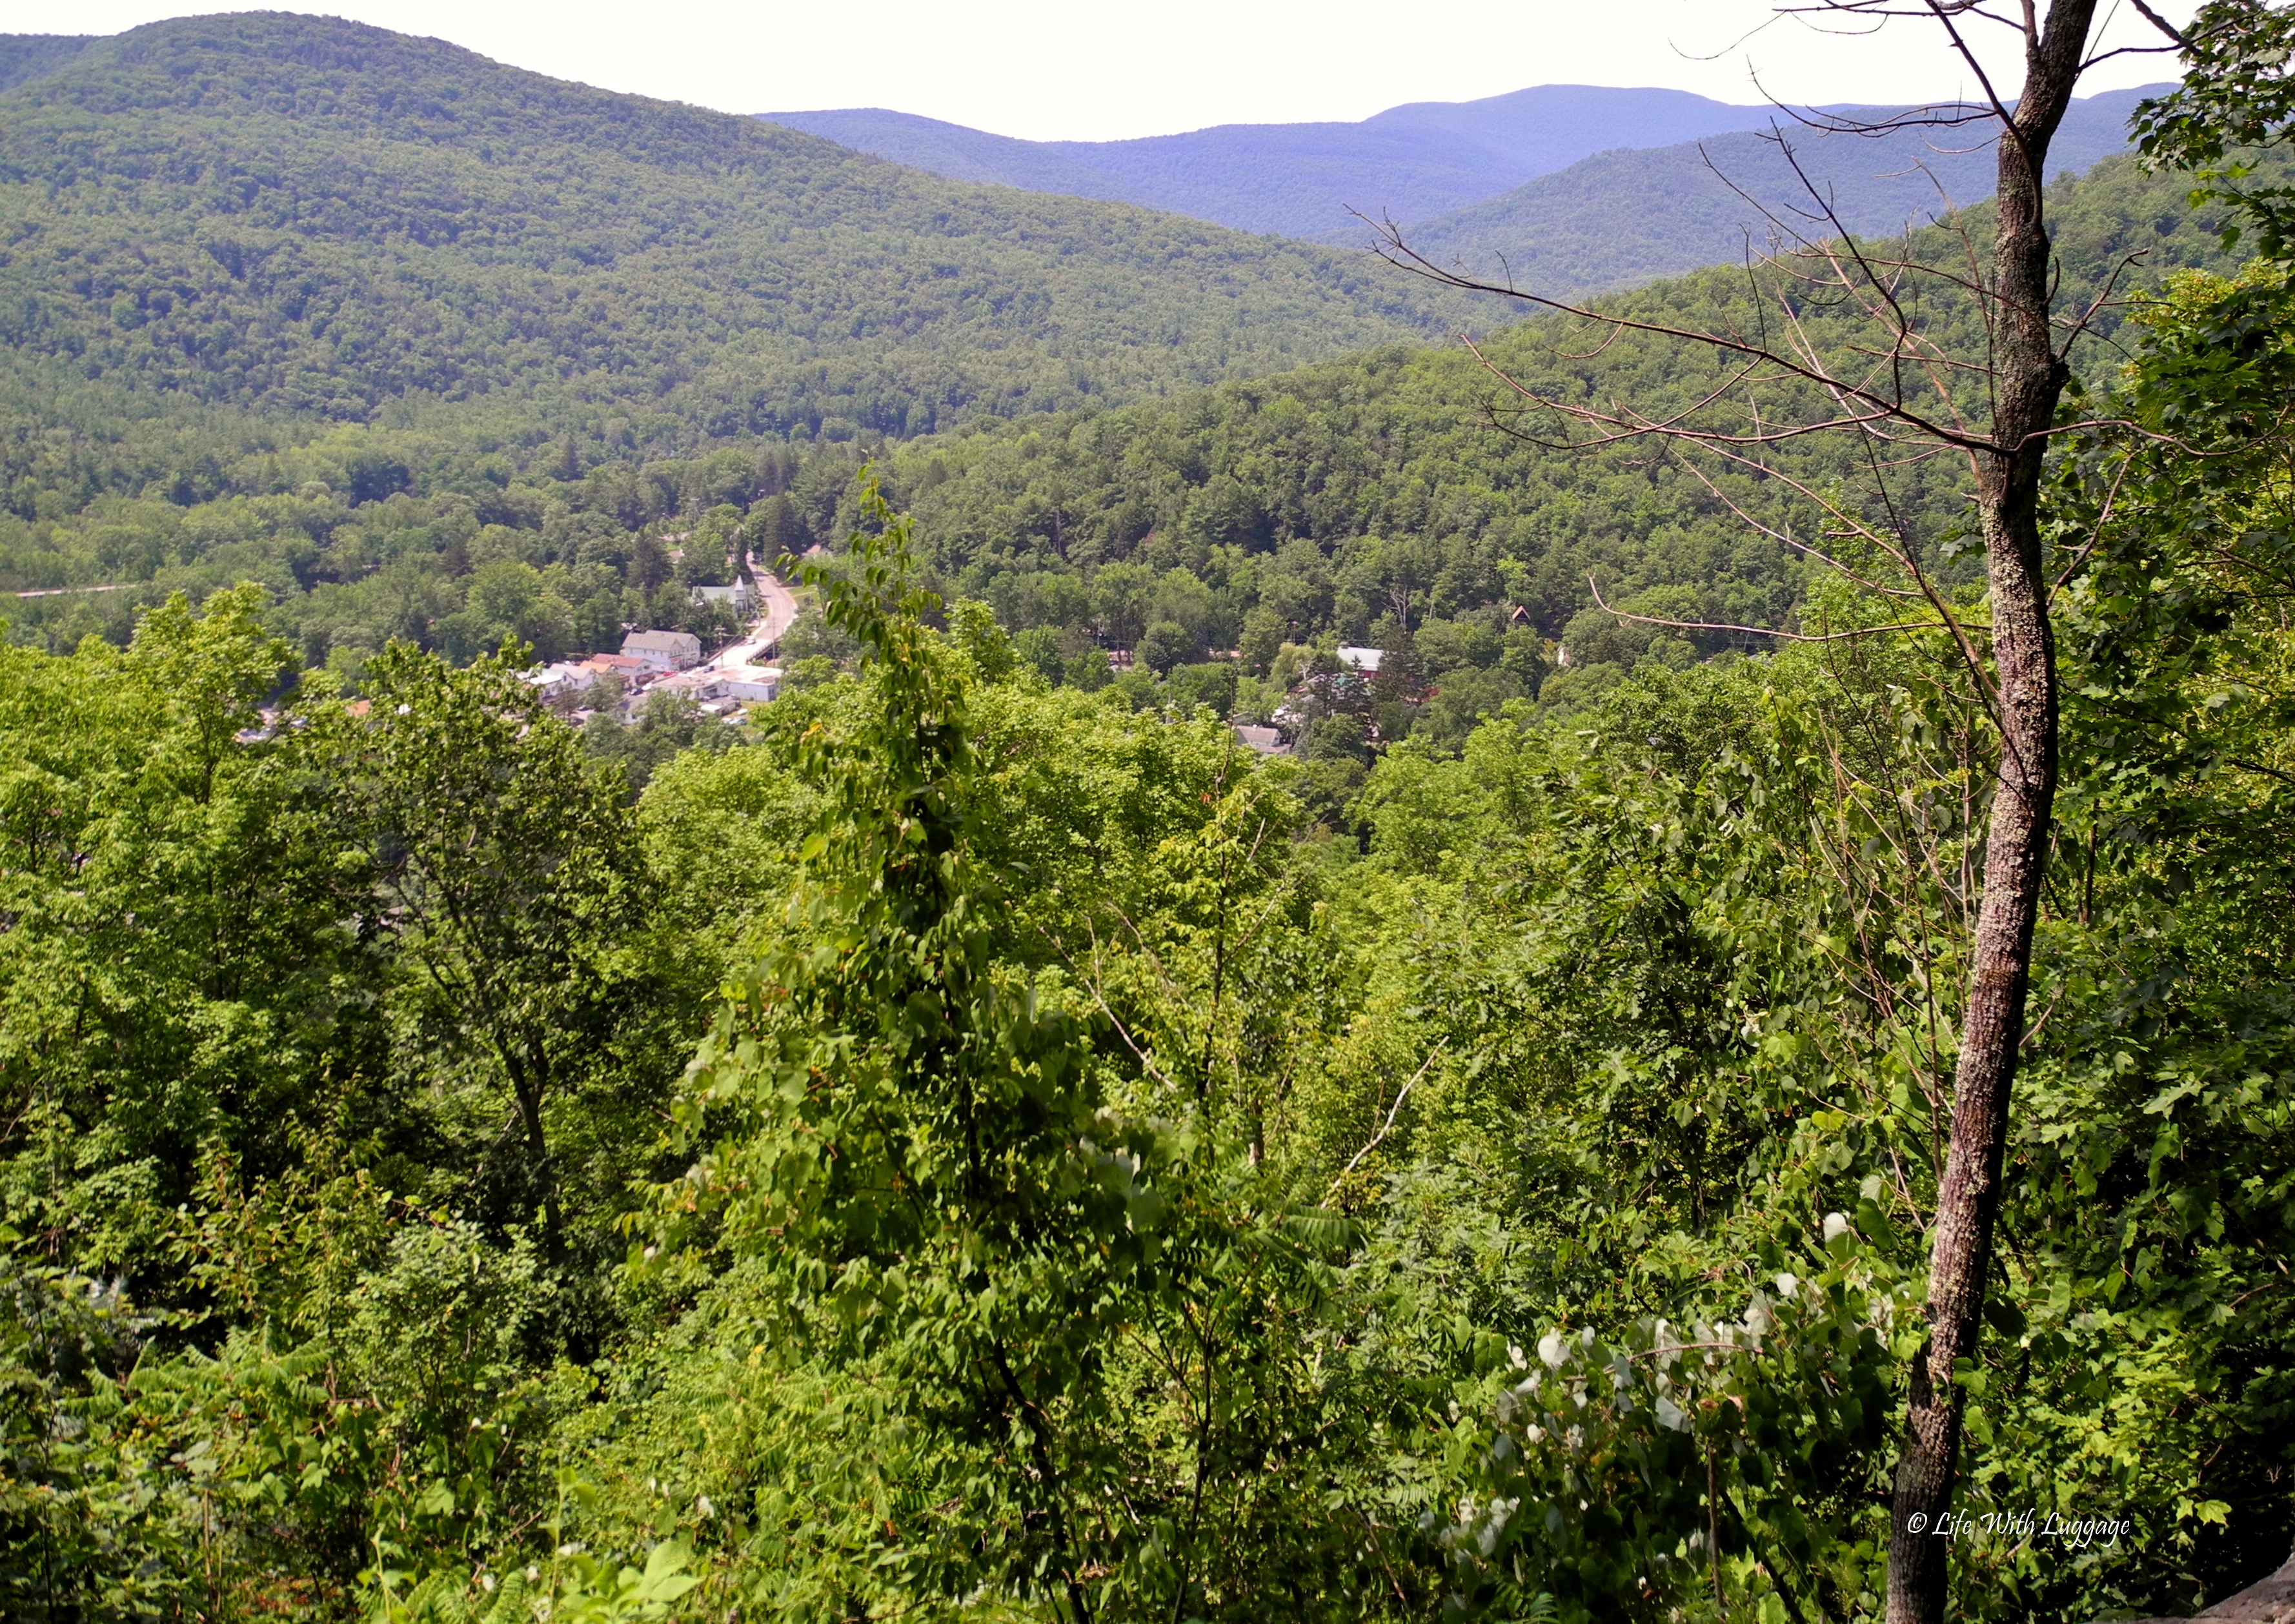 The view from Mt. Tremper